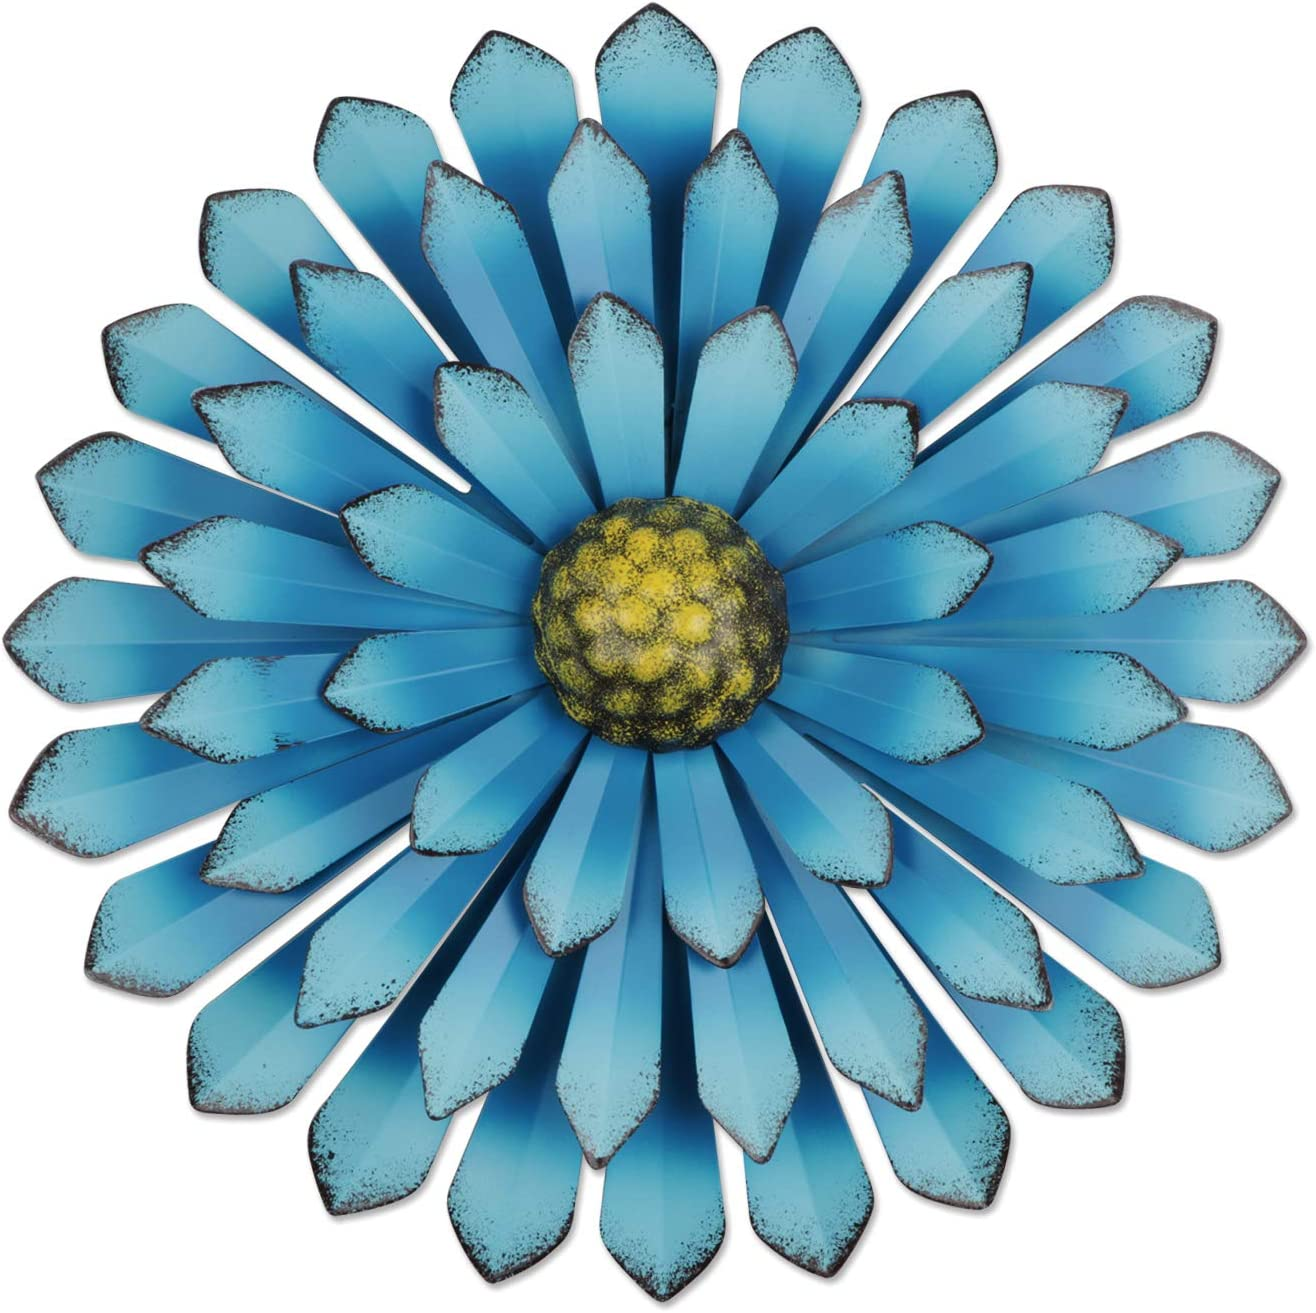 YiYa 33CM Metal Flower Wall Art Decorations Indoor or Outdoor Wall Sculptures Hanging for Bathroom Livingroom Bedroom (Sky Blue)